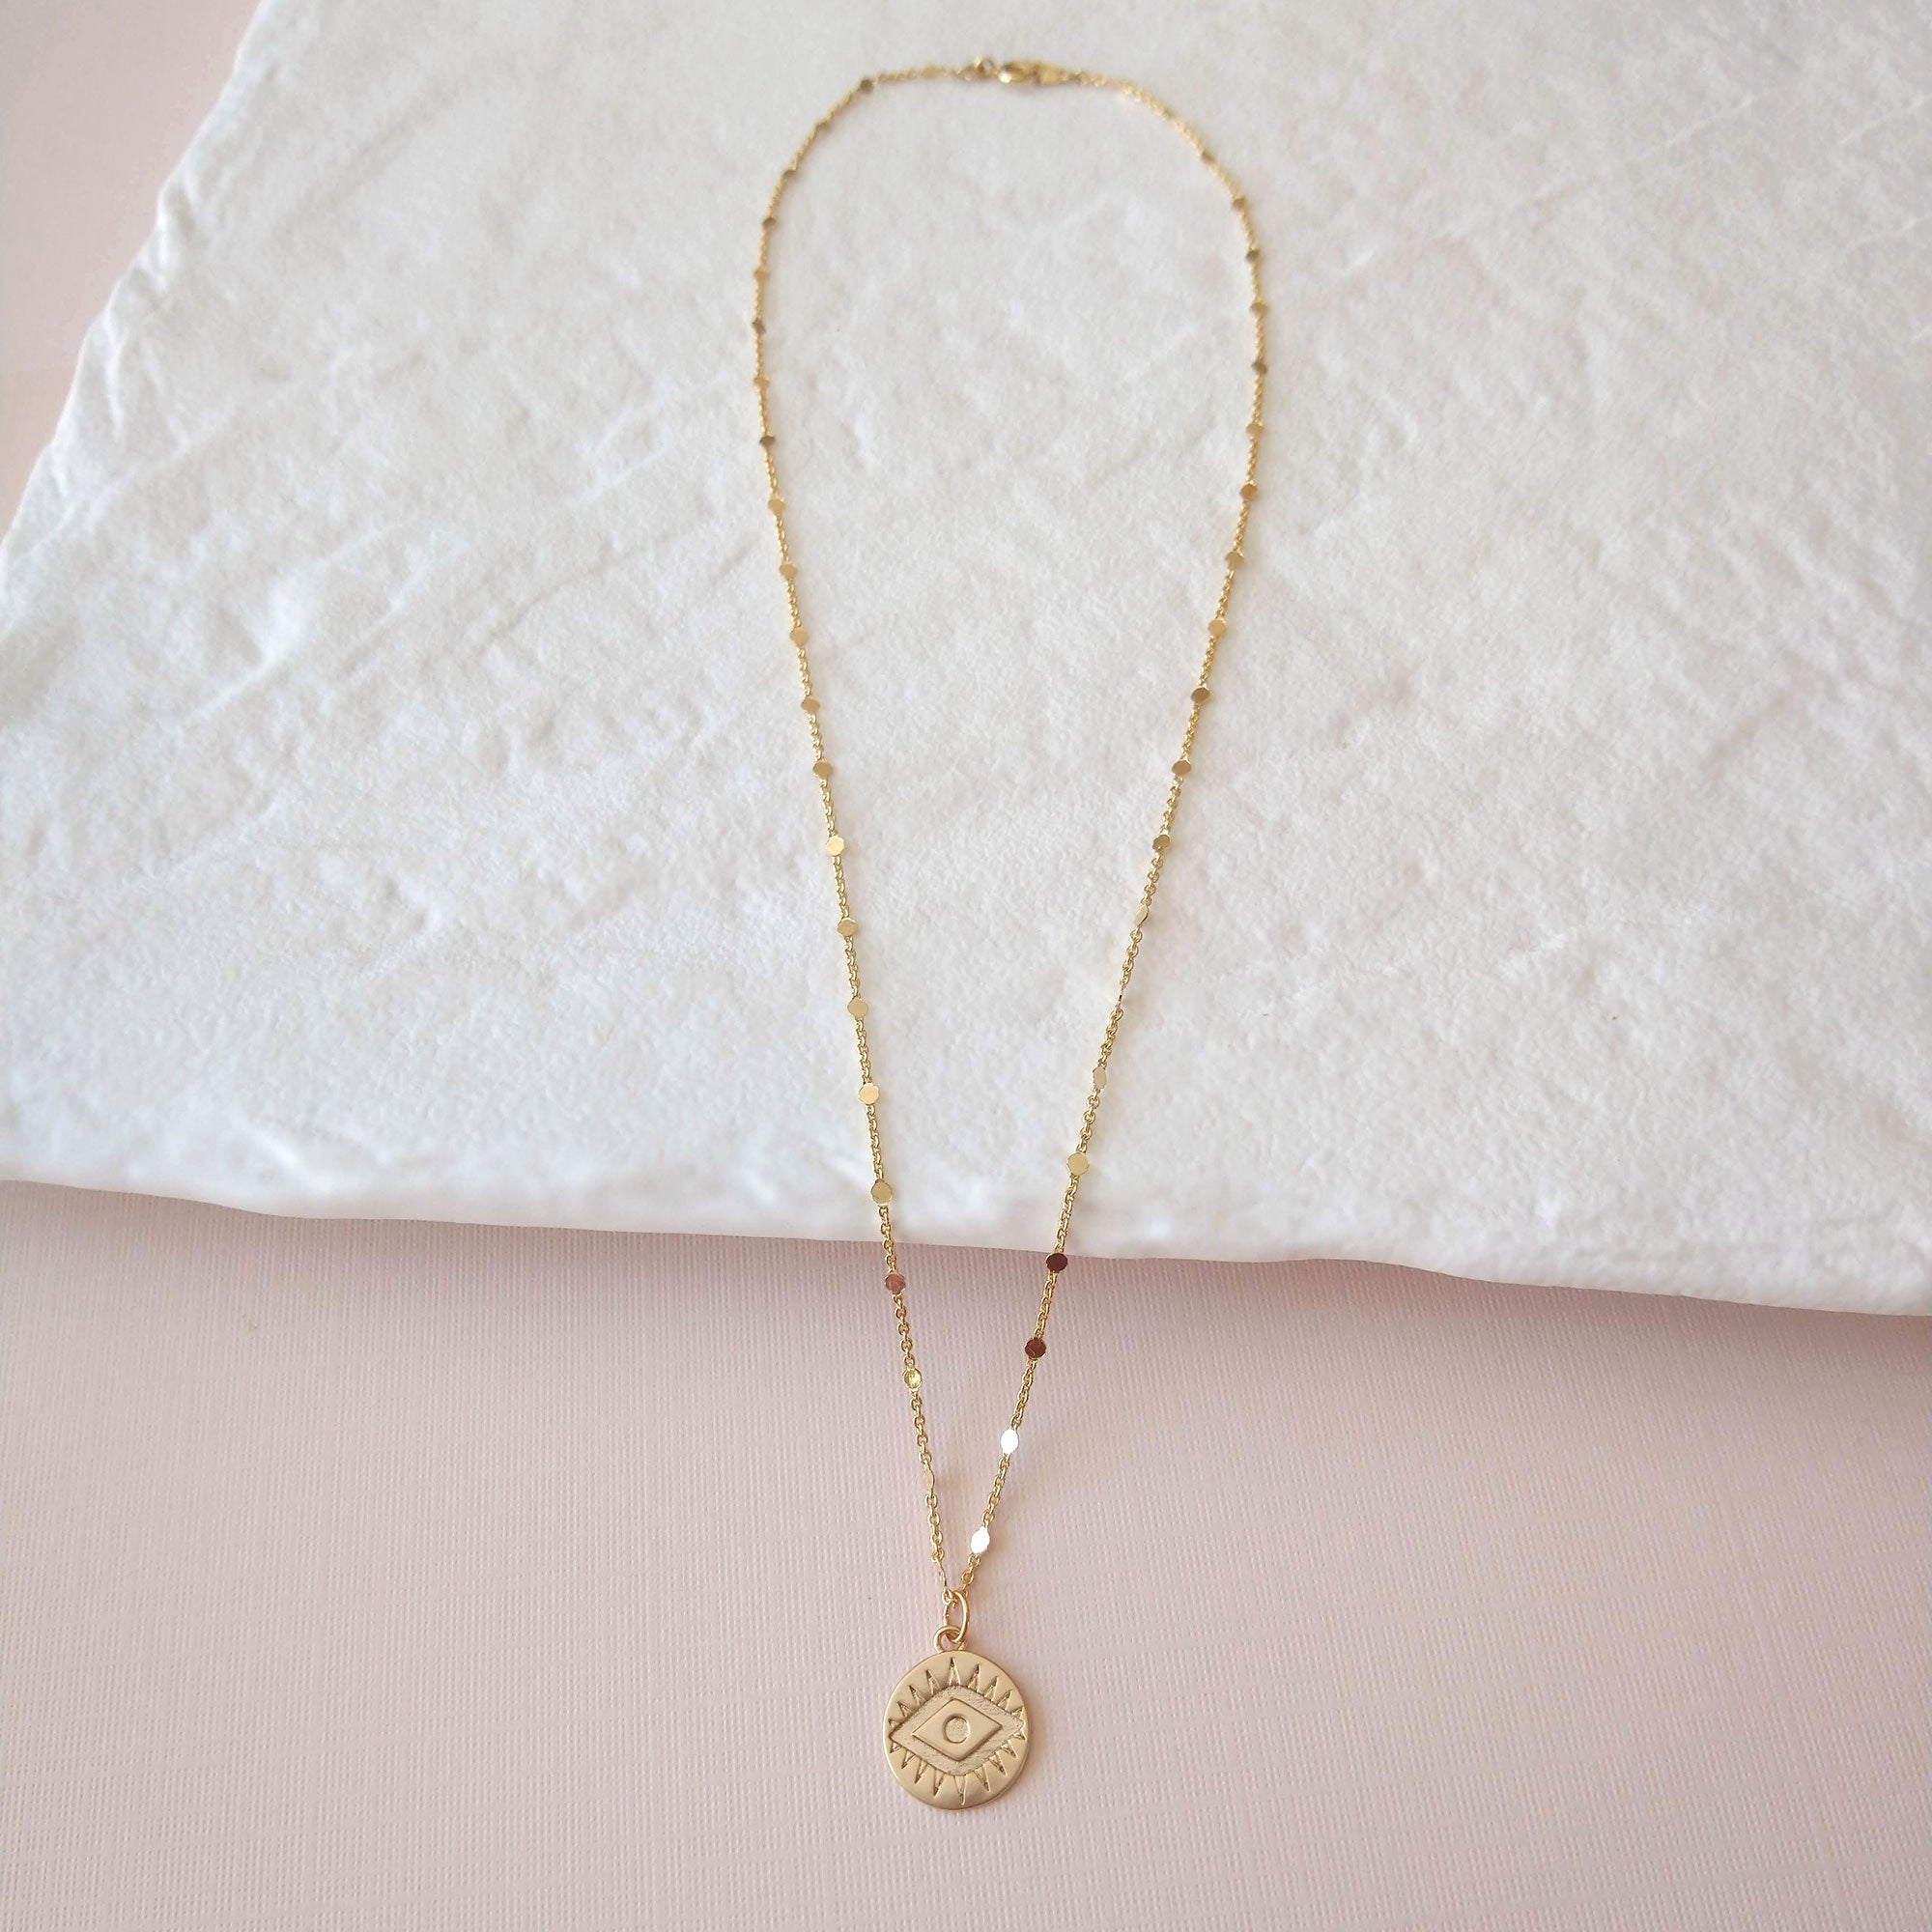 Evil eye charm necklace gold plated